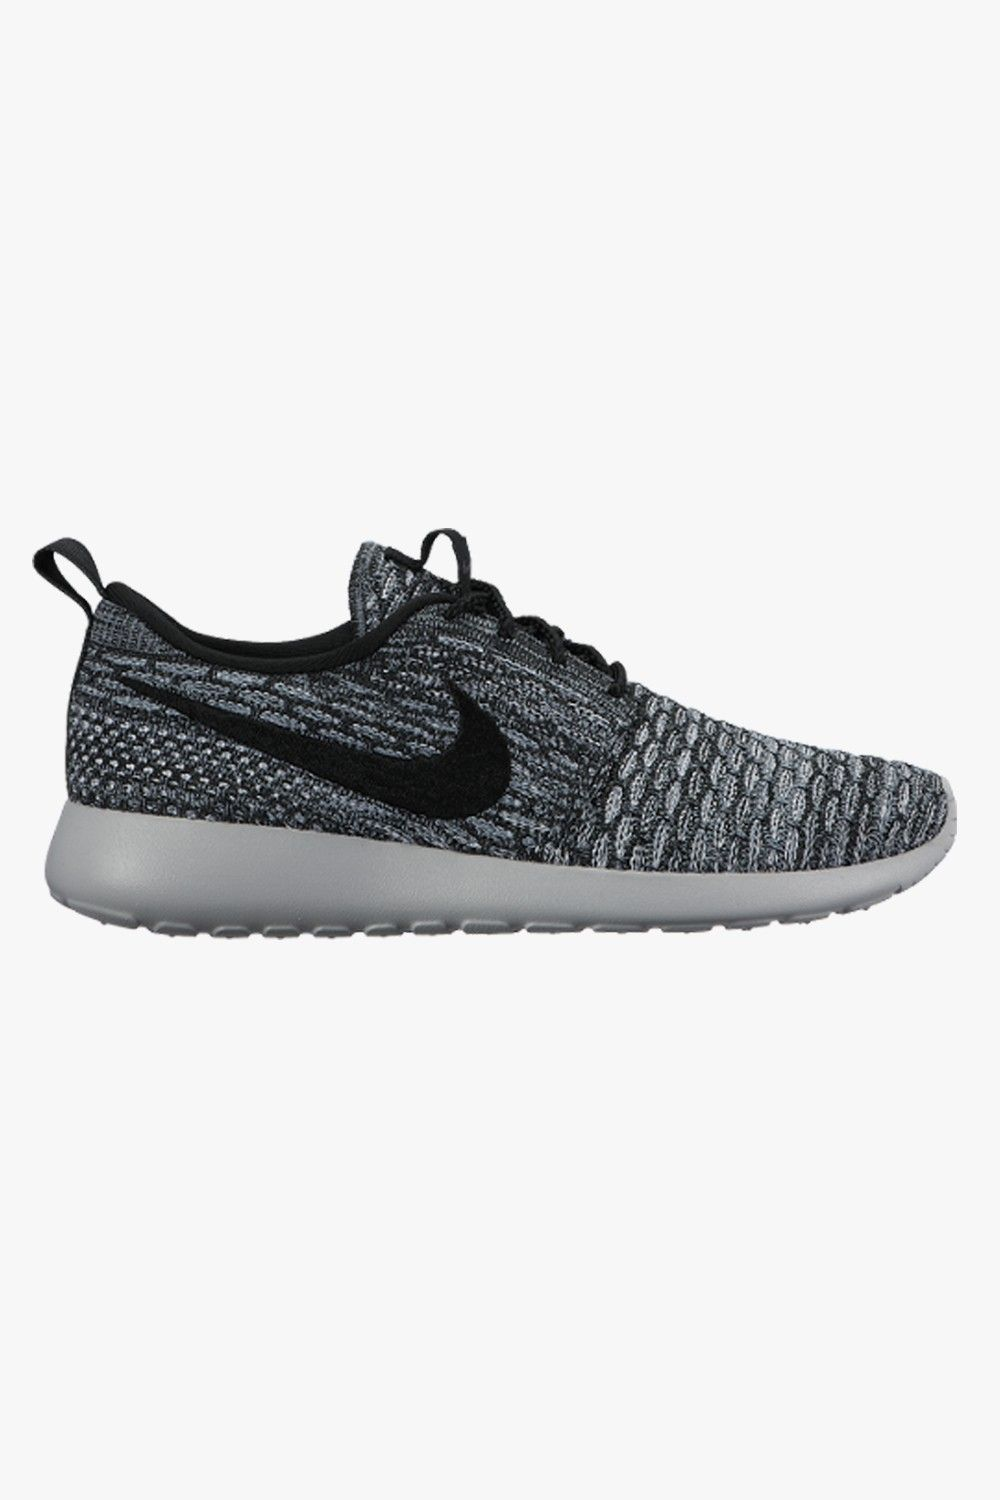 nike roshe flyknit cool grey/wolf grey/white/black womens shoes